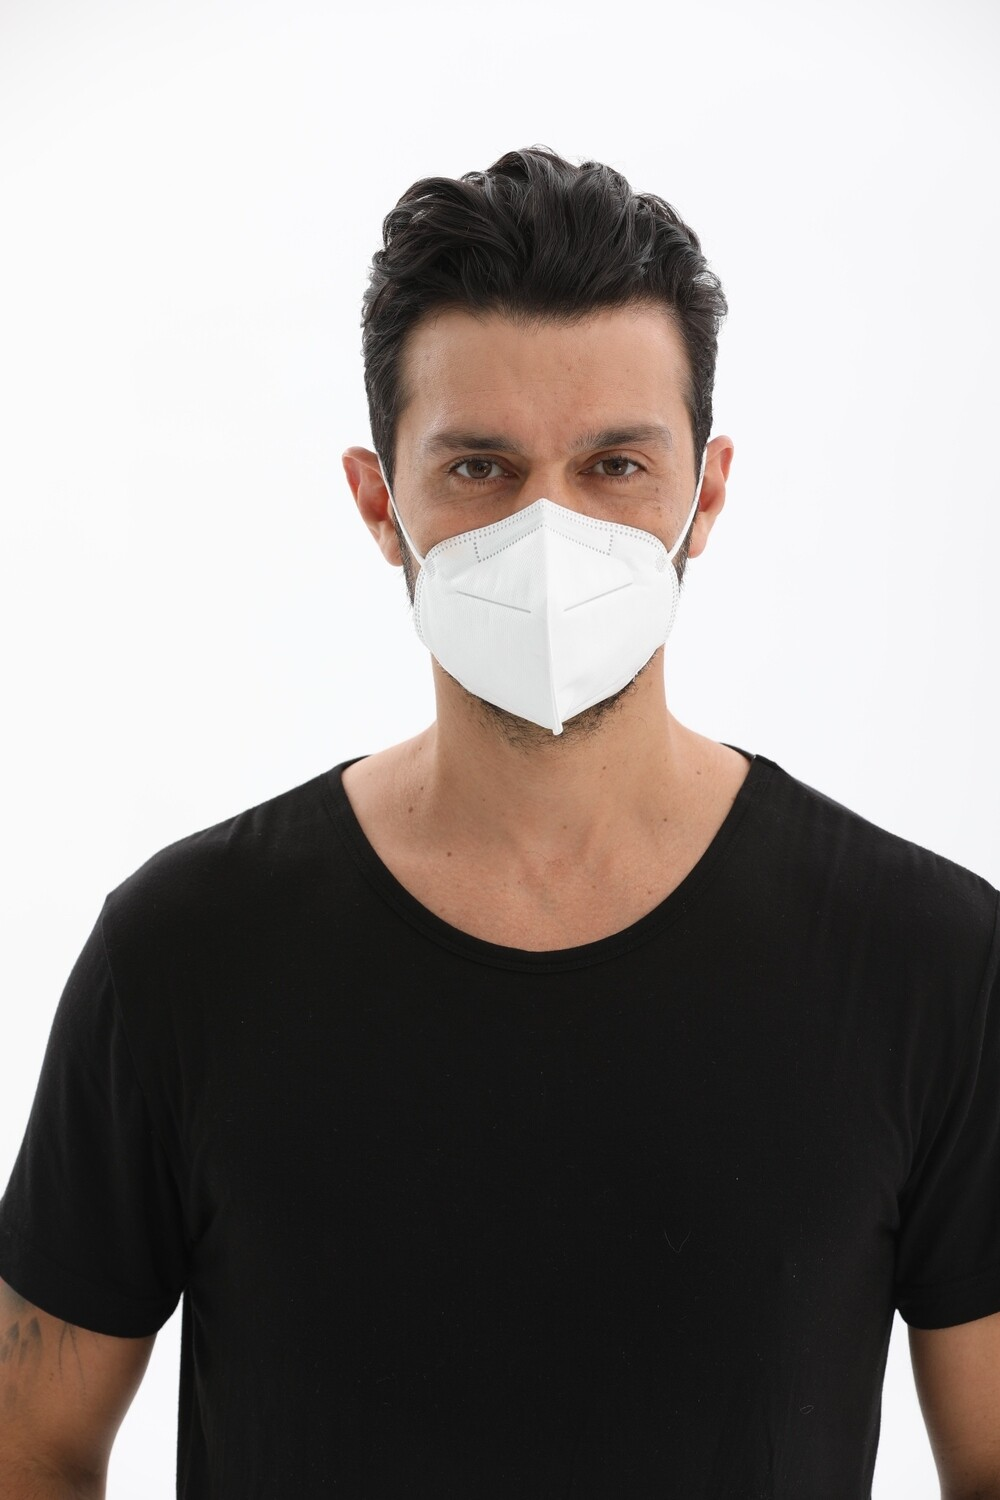 KN95 Respirator Masks - ONLY $0.92 per Mask (1,000 mask box)